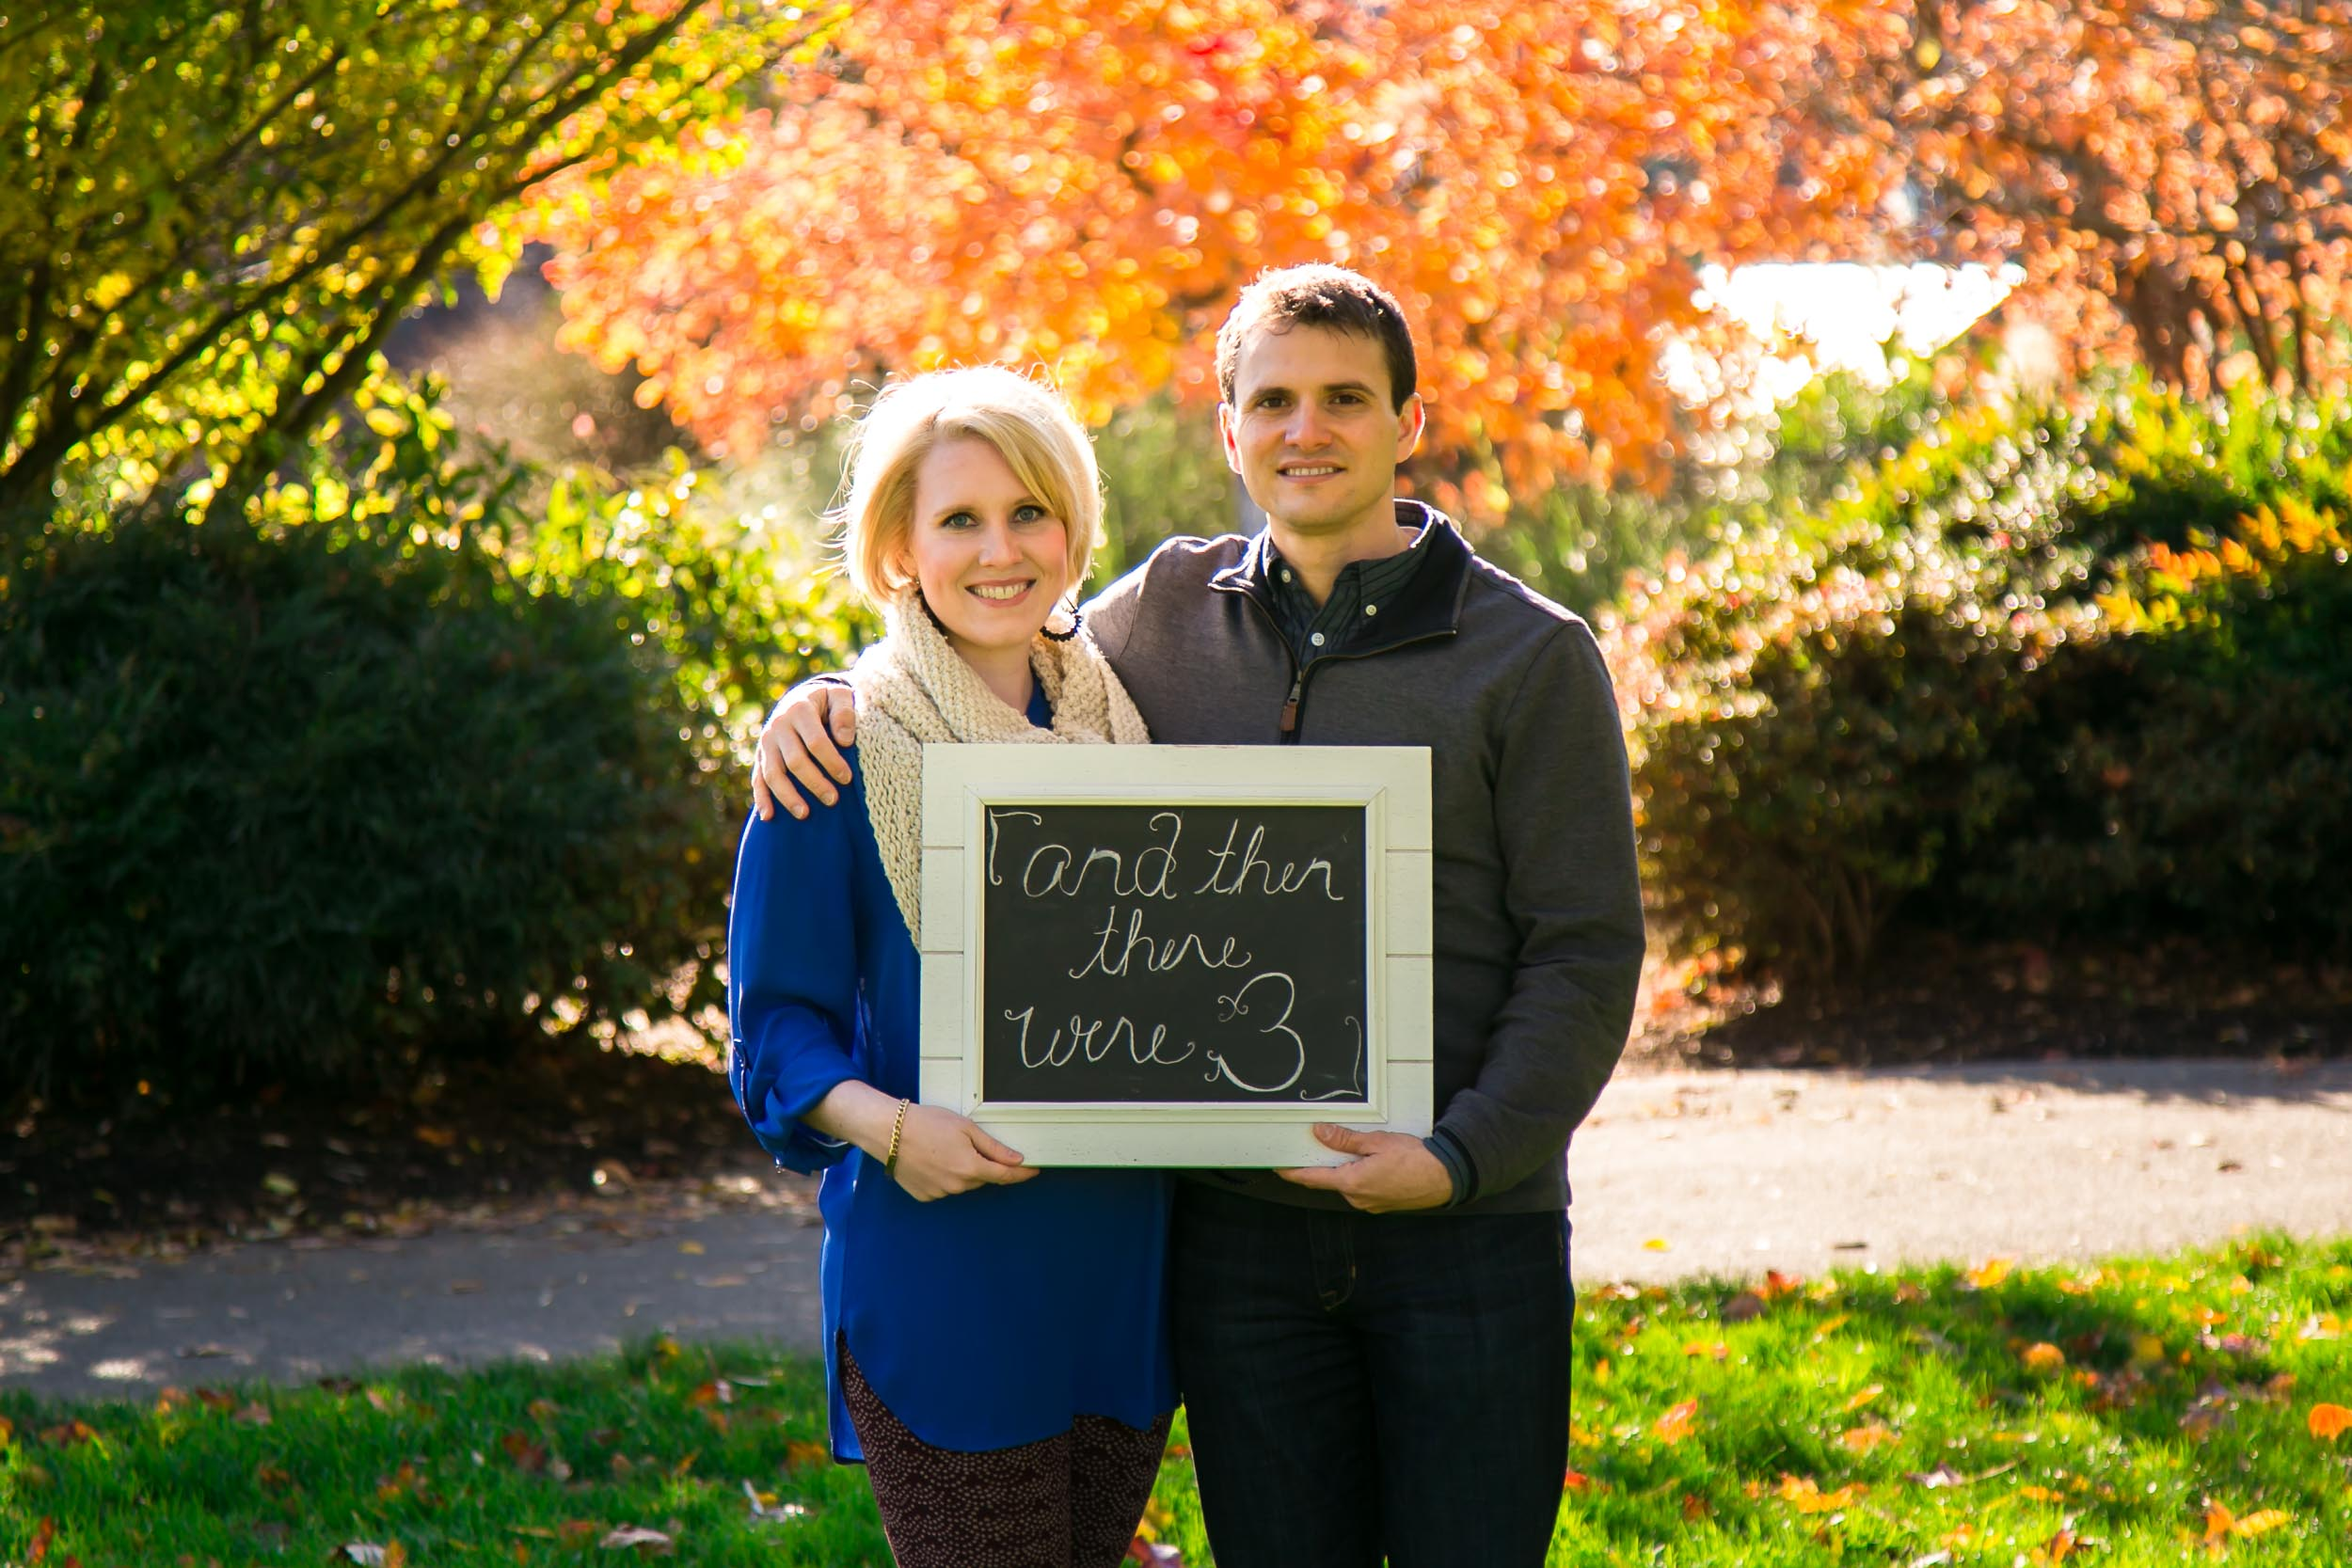 Seattle Family Photographer | G. Lin Photography | Couple holding sign in park